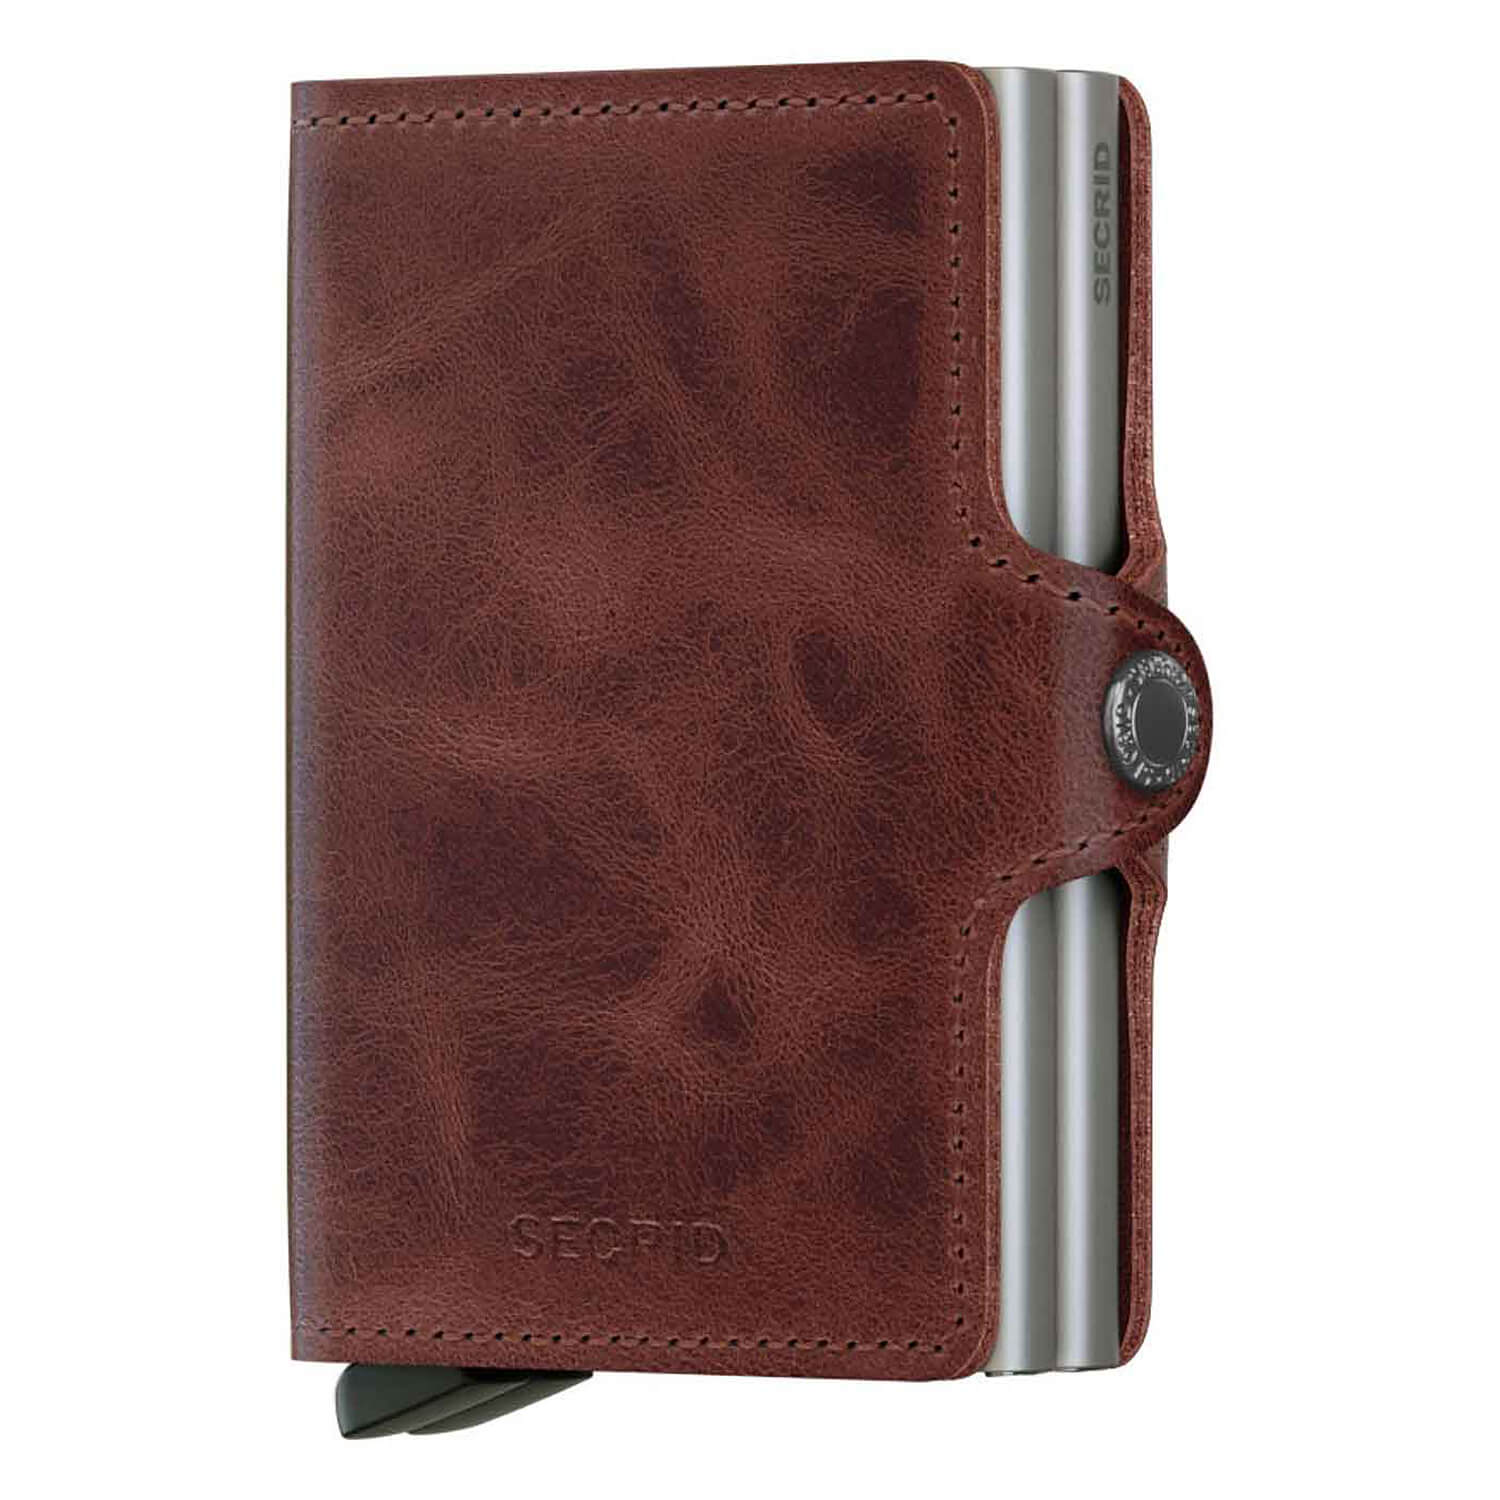 Secrid Twin Vintage Brown Leather Wallet